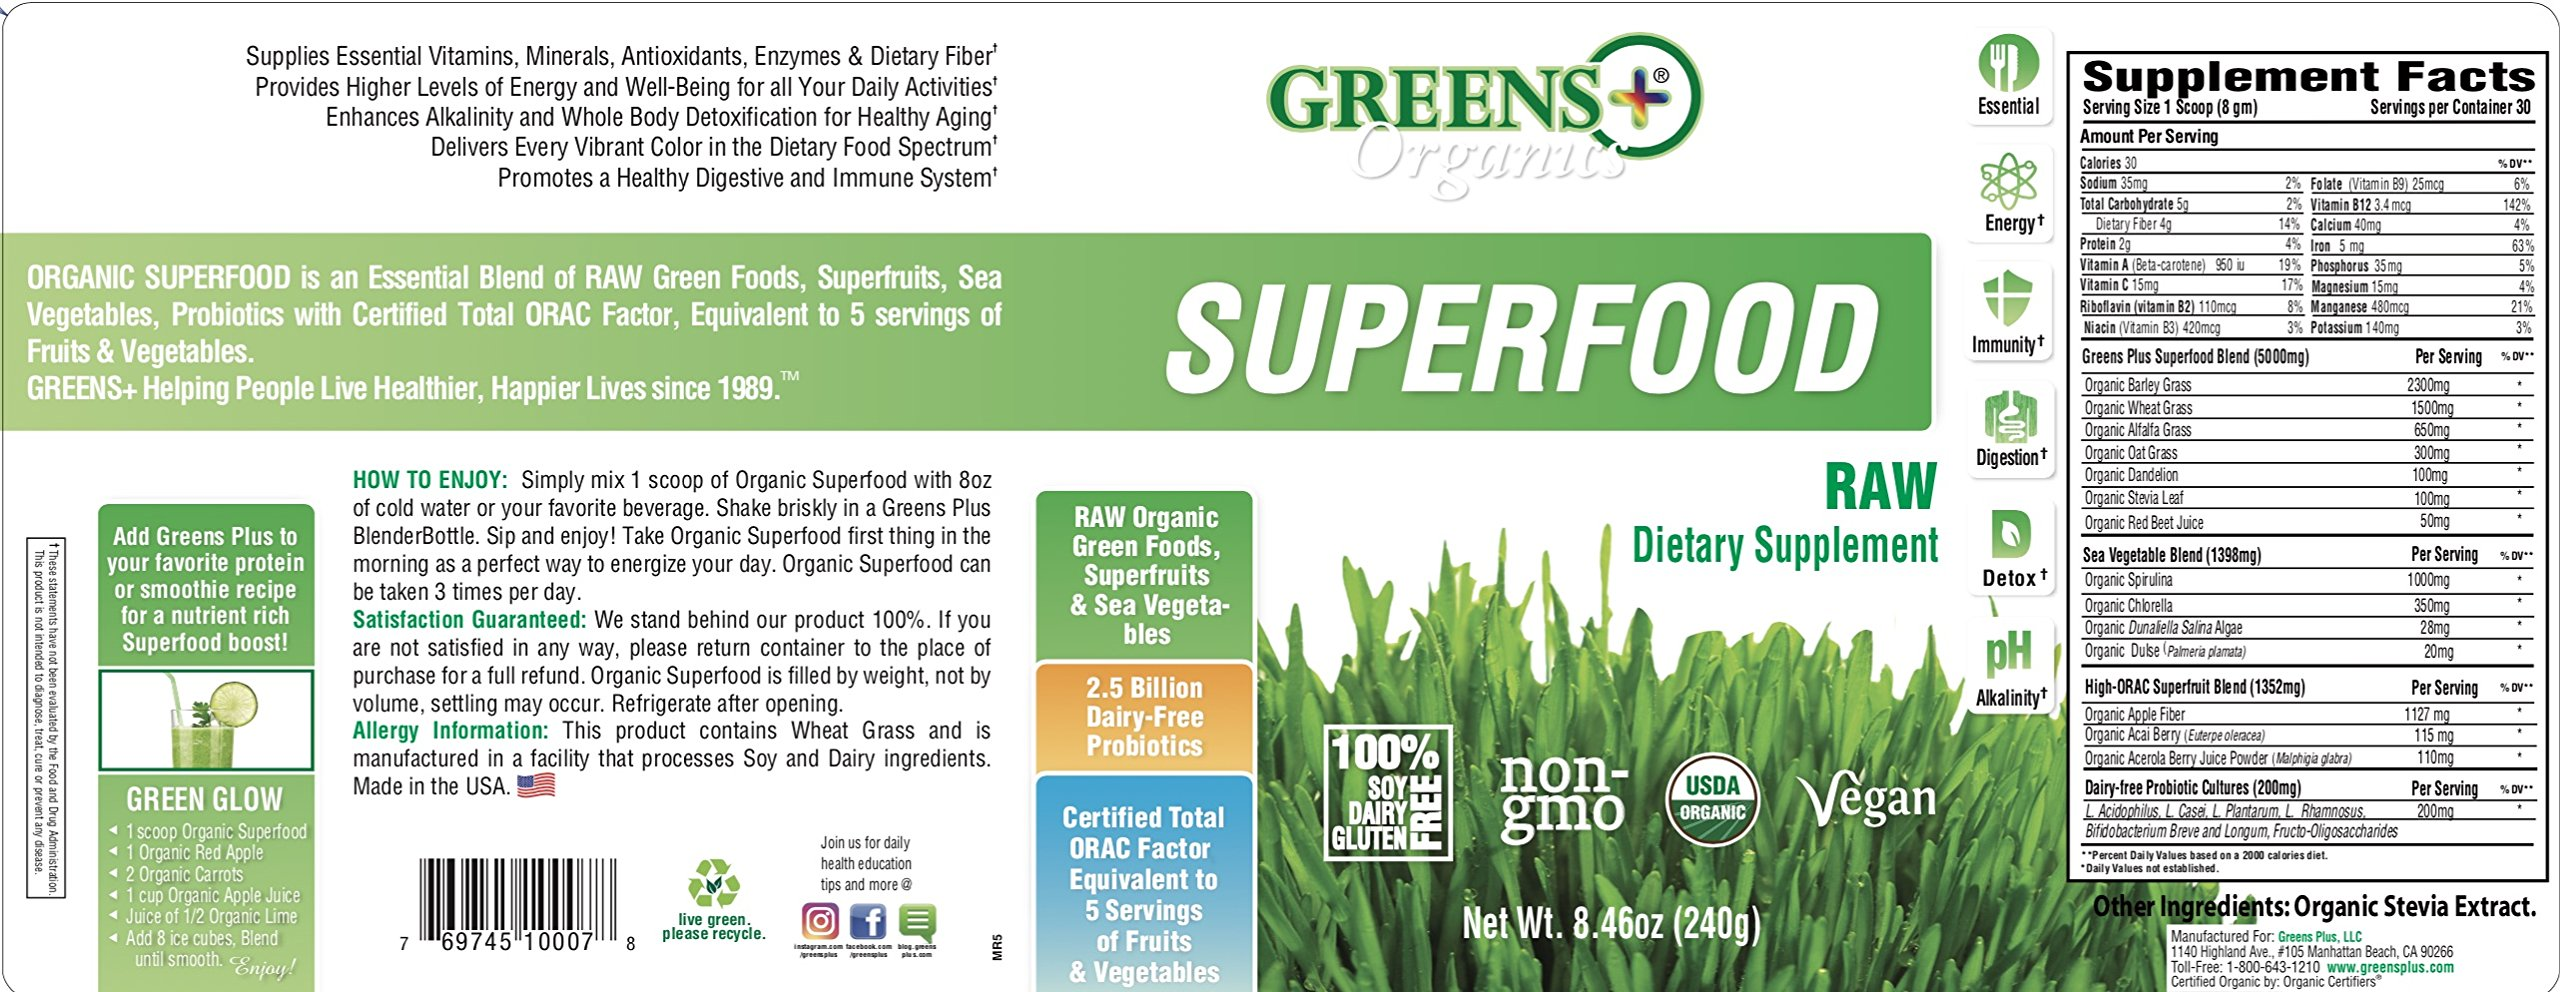 Greens Plus Organics Super-Food Raw | Non GMO | Dietary Supplement Greens Powder - 8.46 Oz